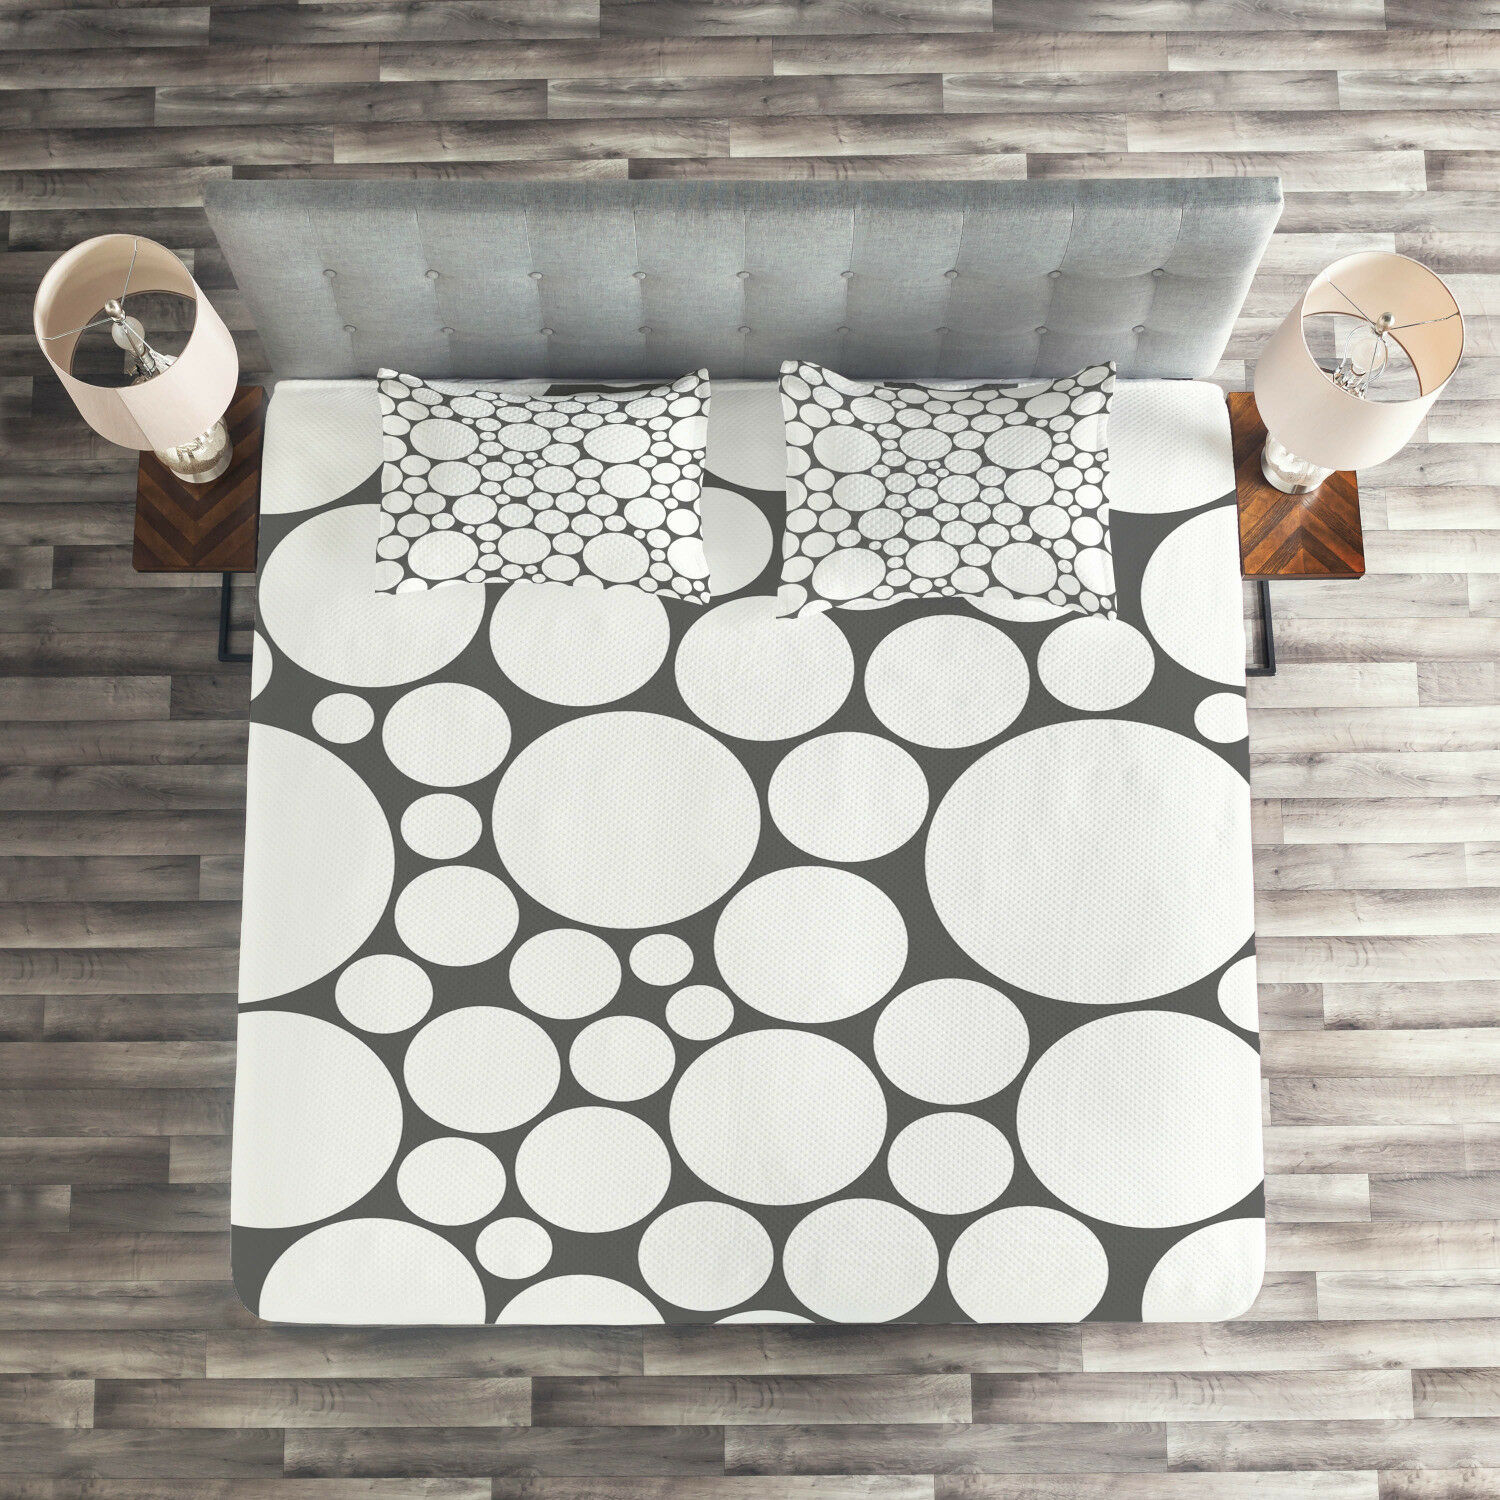 Geometric Quilted Coverlet & Pillow Shams Set, Grey White Circle Print